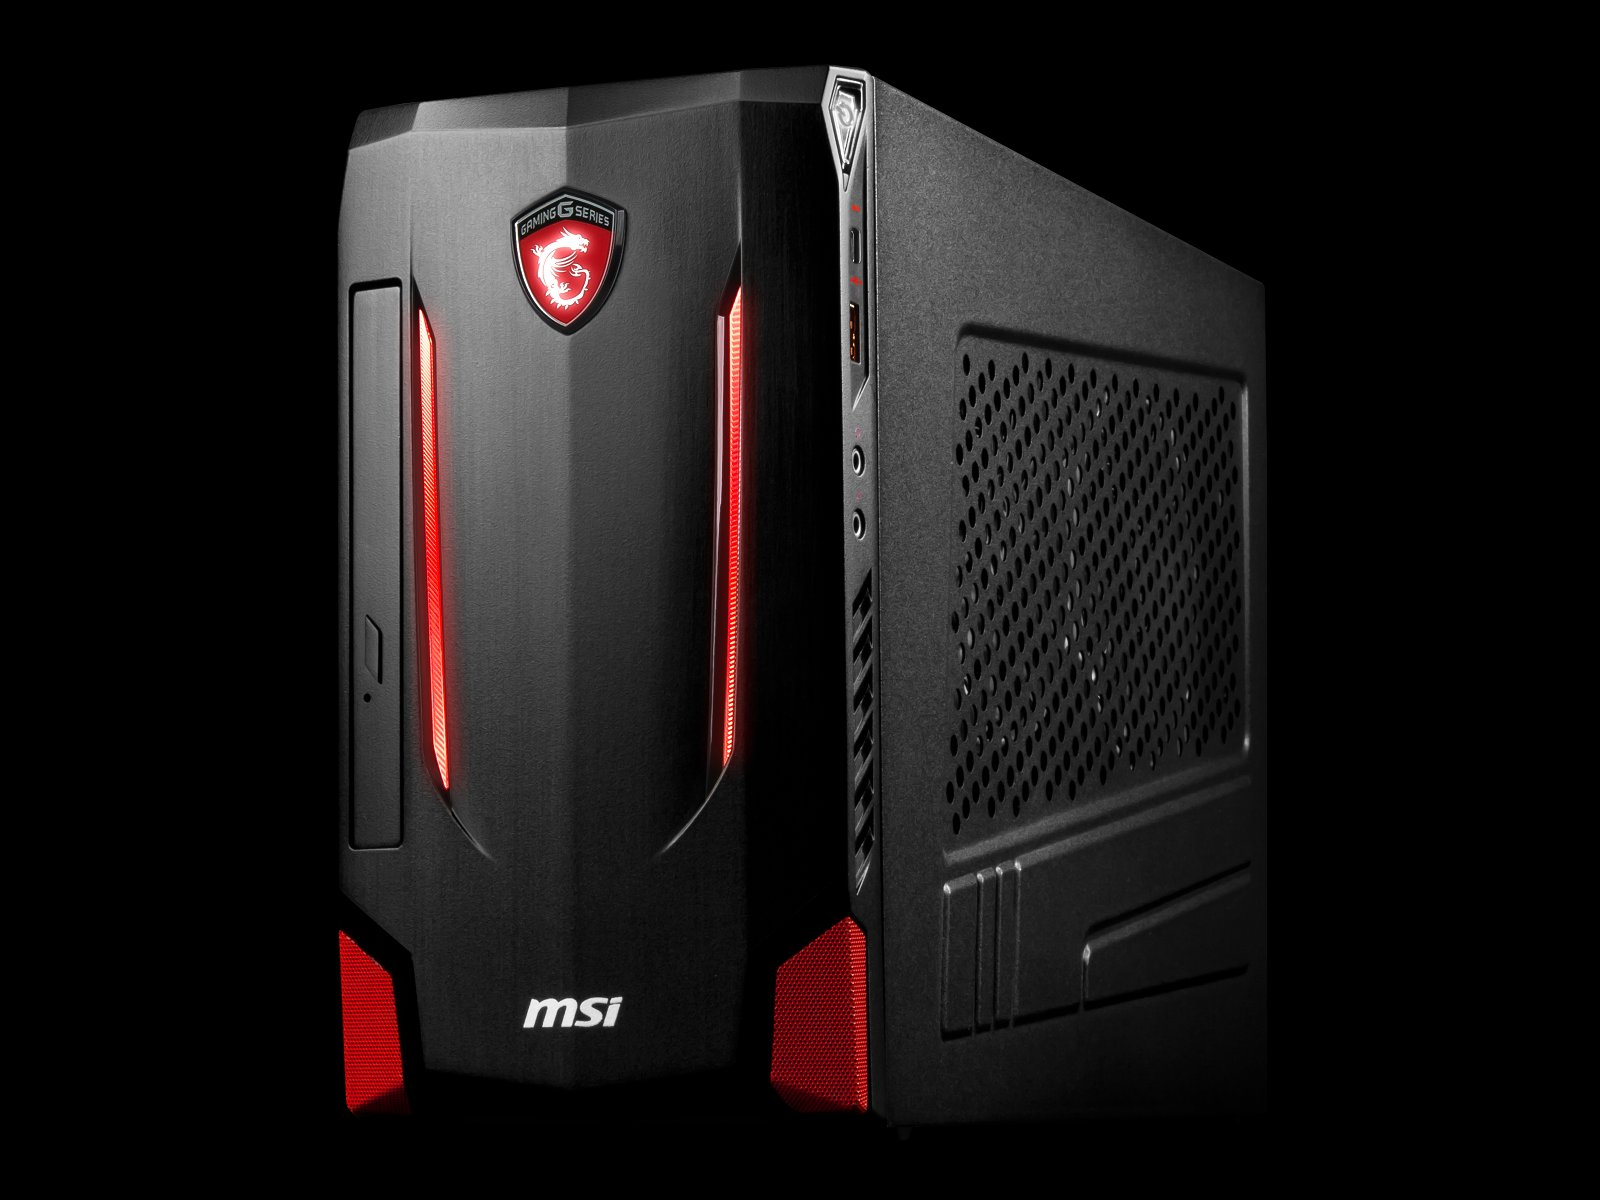 MSI Nightblade MI2C